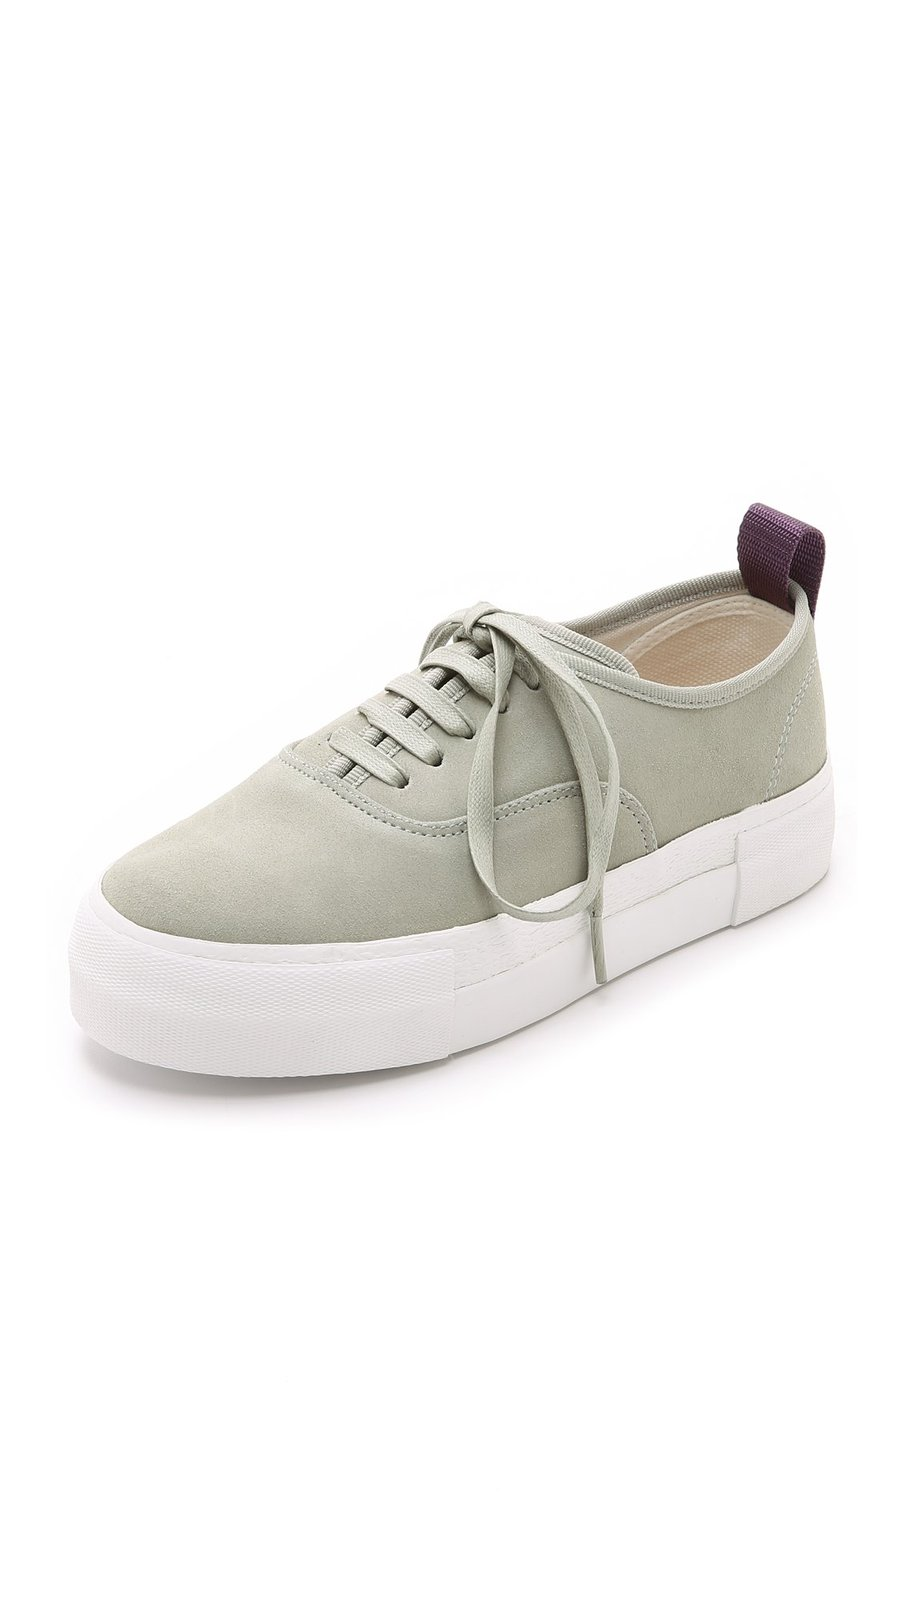 Eytys Women's Mother Suede Sneakers, Grey, 36 EU (6.5 B(M) US Women)